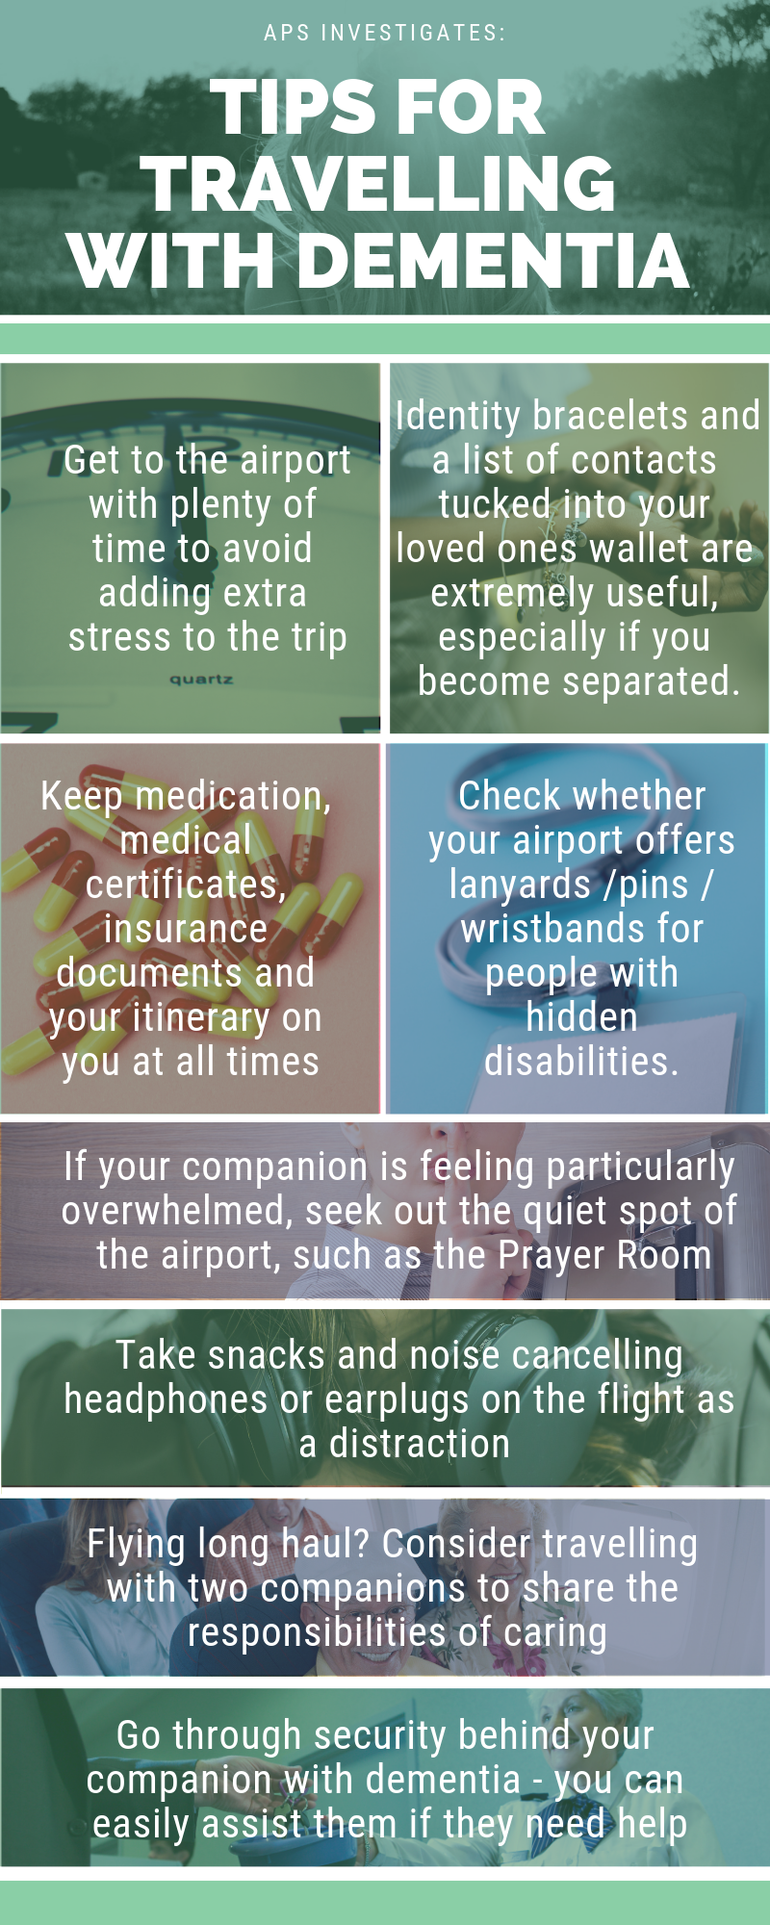 Tips for travelling with dementia